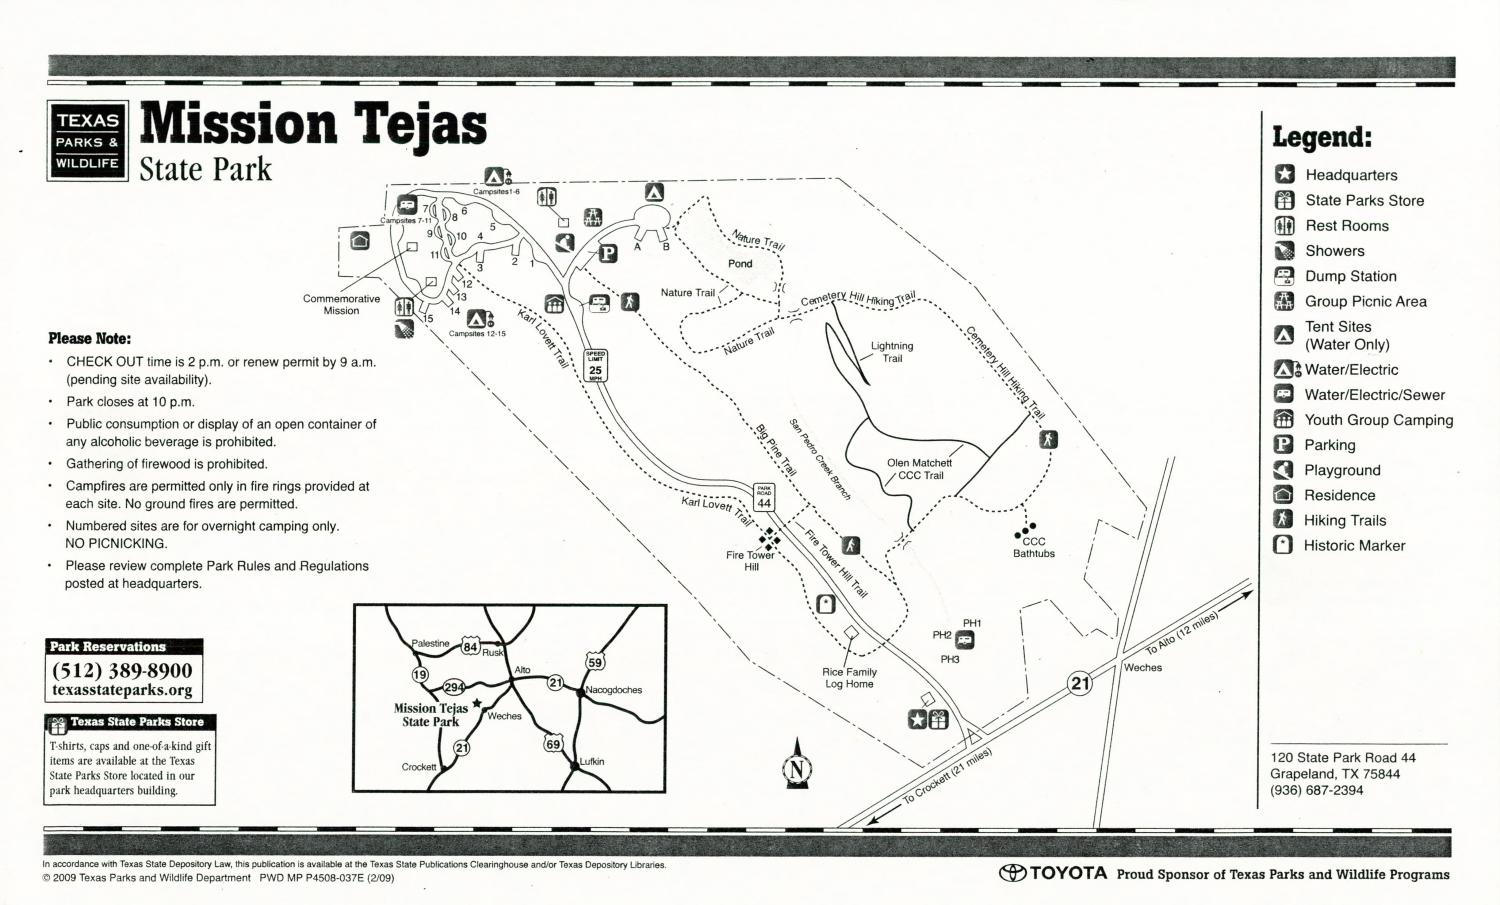 Mission Tejas State Park, Map of the Mission Tejas State Park outlining hiking trails and highlighting activities, facilities, and other features such as bathrooms, lodgings, water/electric, etc. It also contains general information for the park and for the Texas Parks and Wildlife Department.,